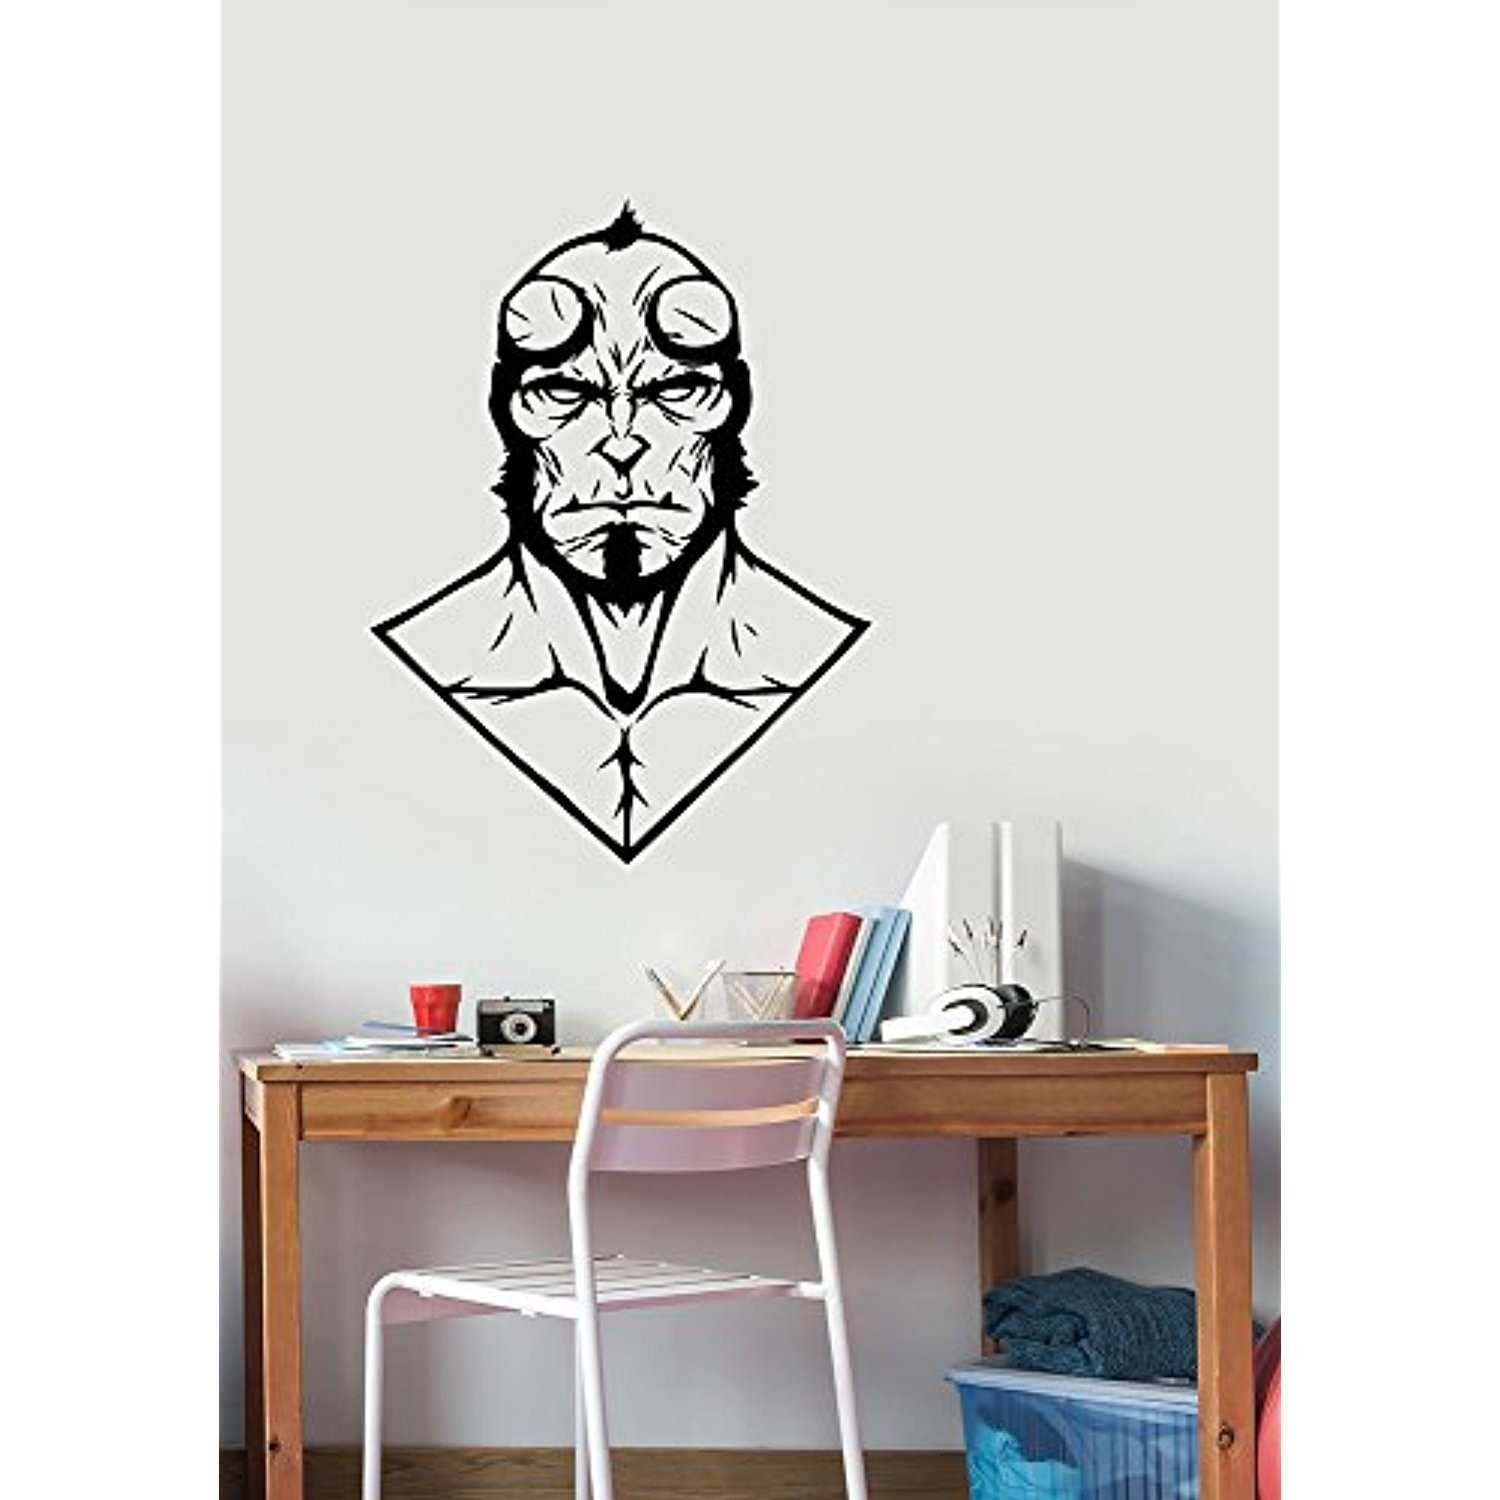 Wall Decals for Bedroom Unique 1 Kirkland Wall Decor Home Design 0d